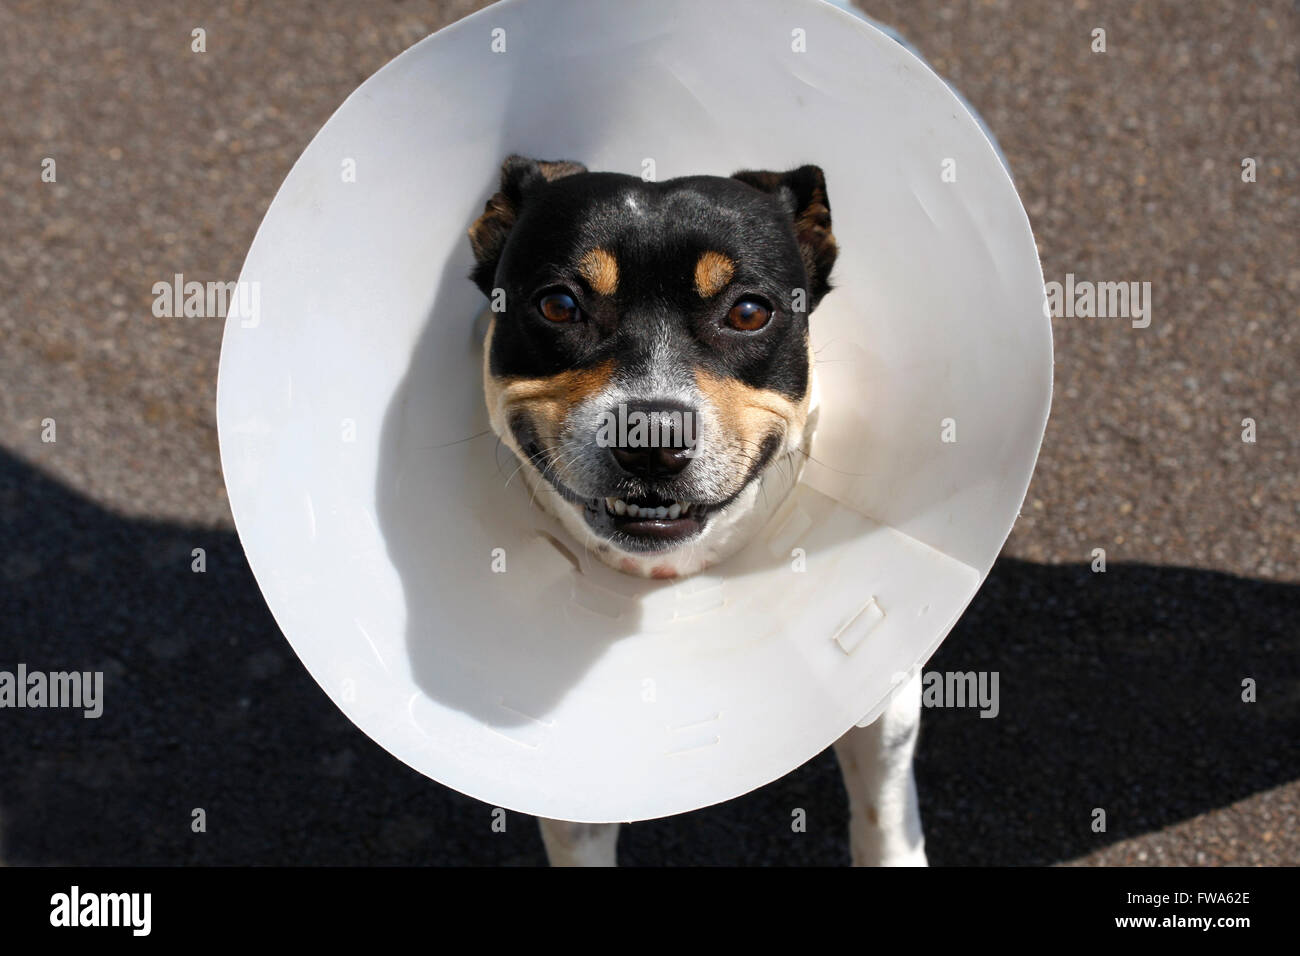 Small smiling dog wearing a cone after surgery - Stock Image